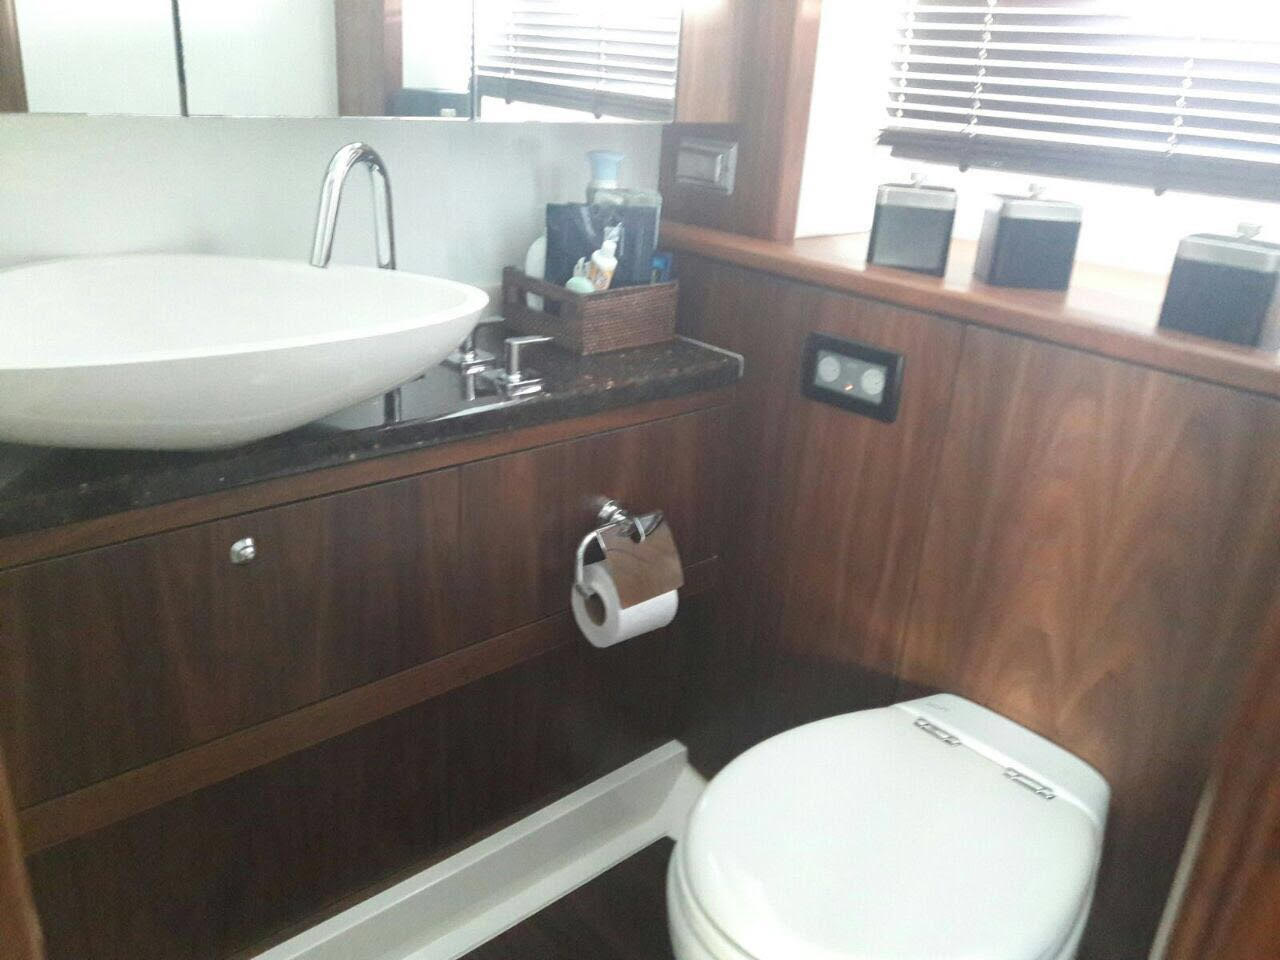 Yacht Rentals in Cancun private Luxury yacht charter in cancun sport fishing isla mujeres puerto morelos puerto aventuras cozumel fishing boat fishing charter fishing trip Caribbean fishing charter Azimut 48 Feet in cancun with flybridege bachelorette party long charter in the caribbean holbox charter snorkel trip